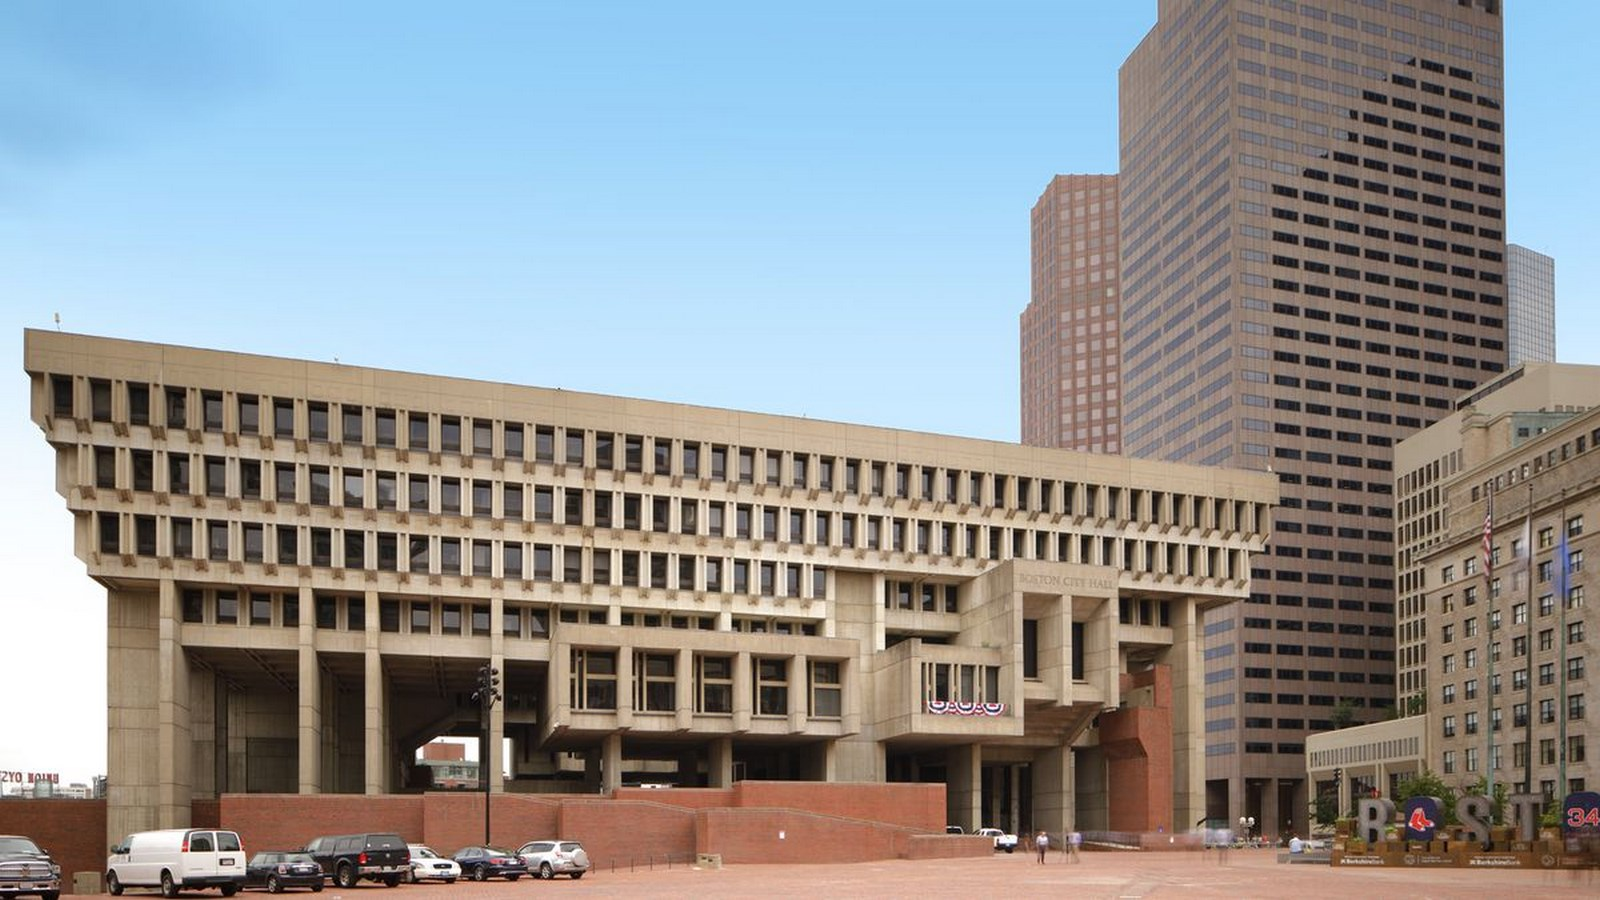 25 Most Iconic Structures In Boston - OSTON CITY HALL - Sheet2